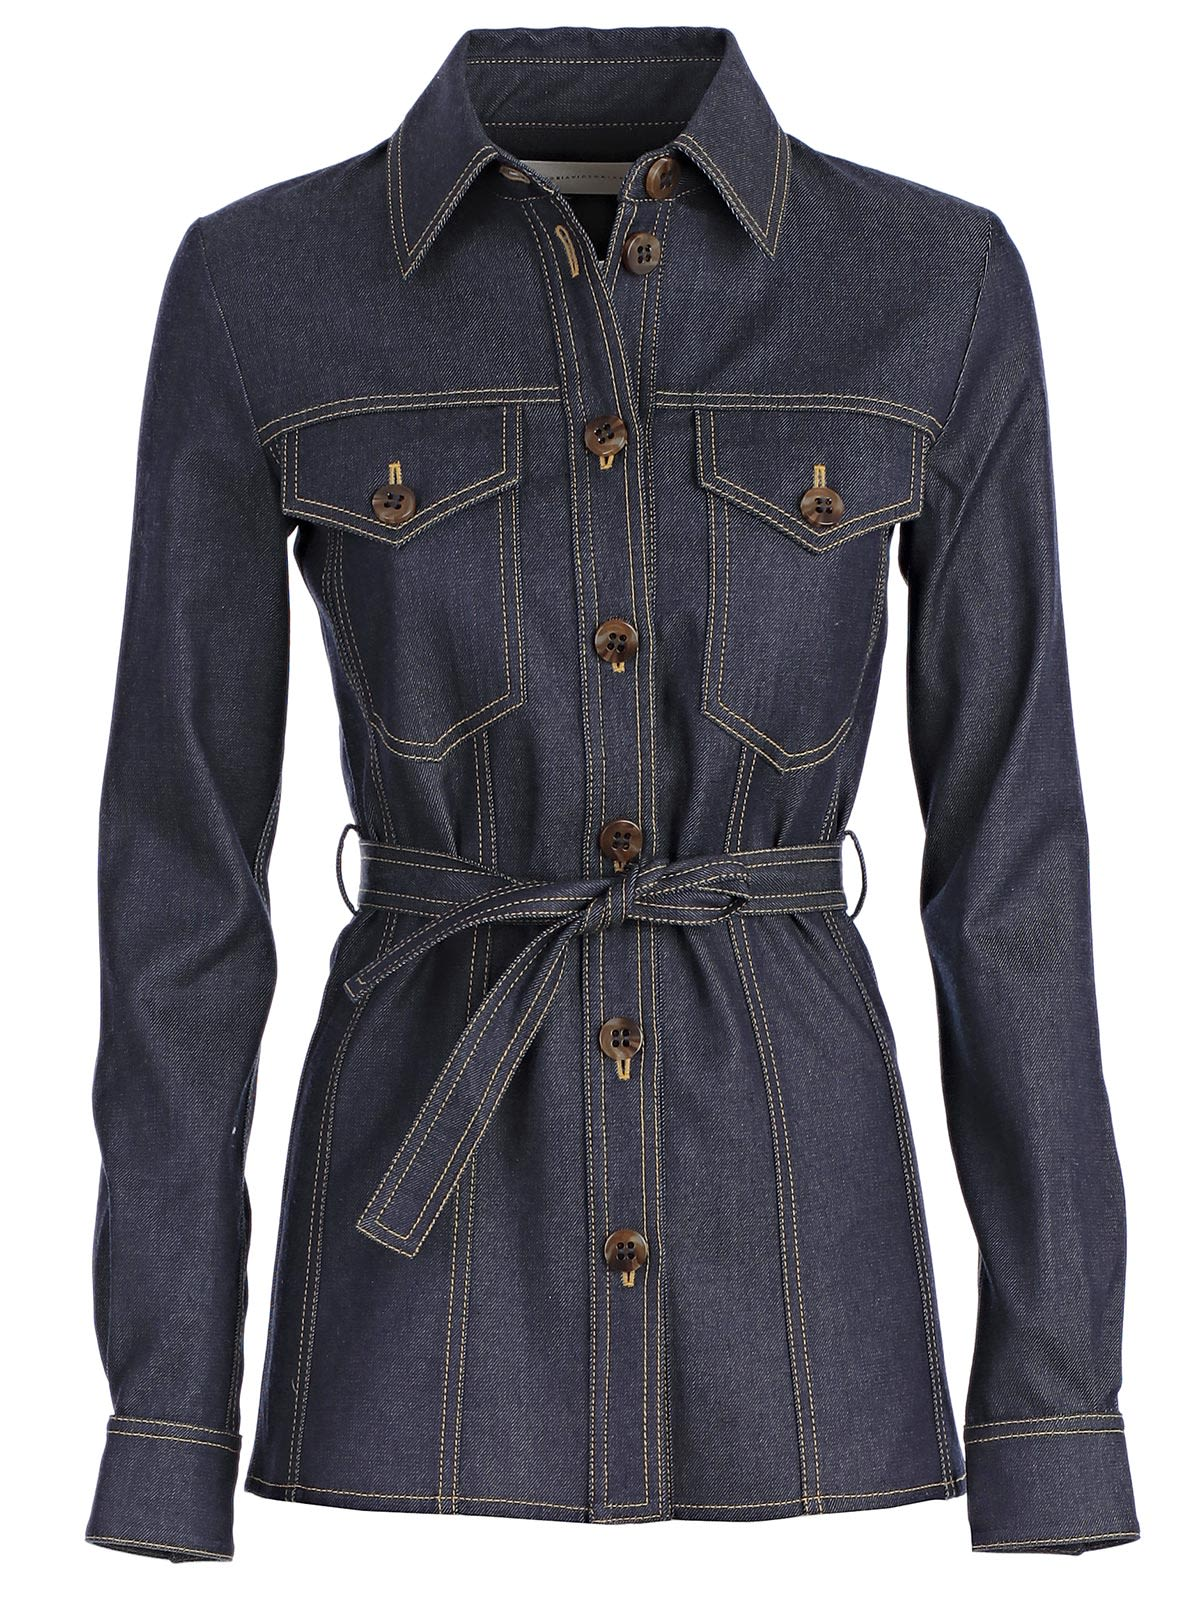 VICTORIA VICTORIA BECKHAM VICTORIA, VICTORIA BECKHAM BUTTON-UP JACKET